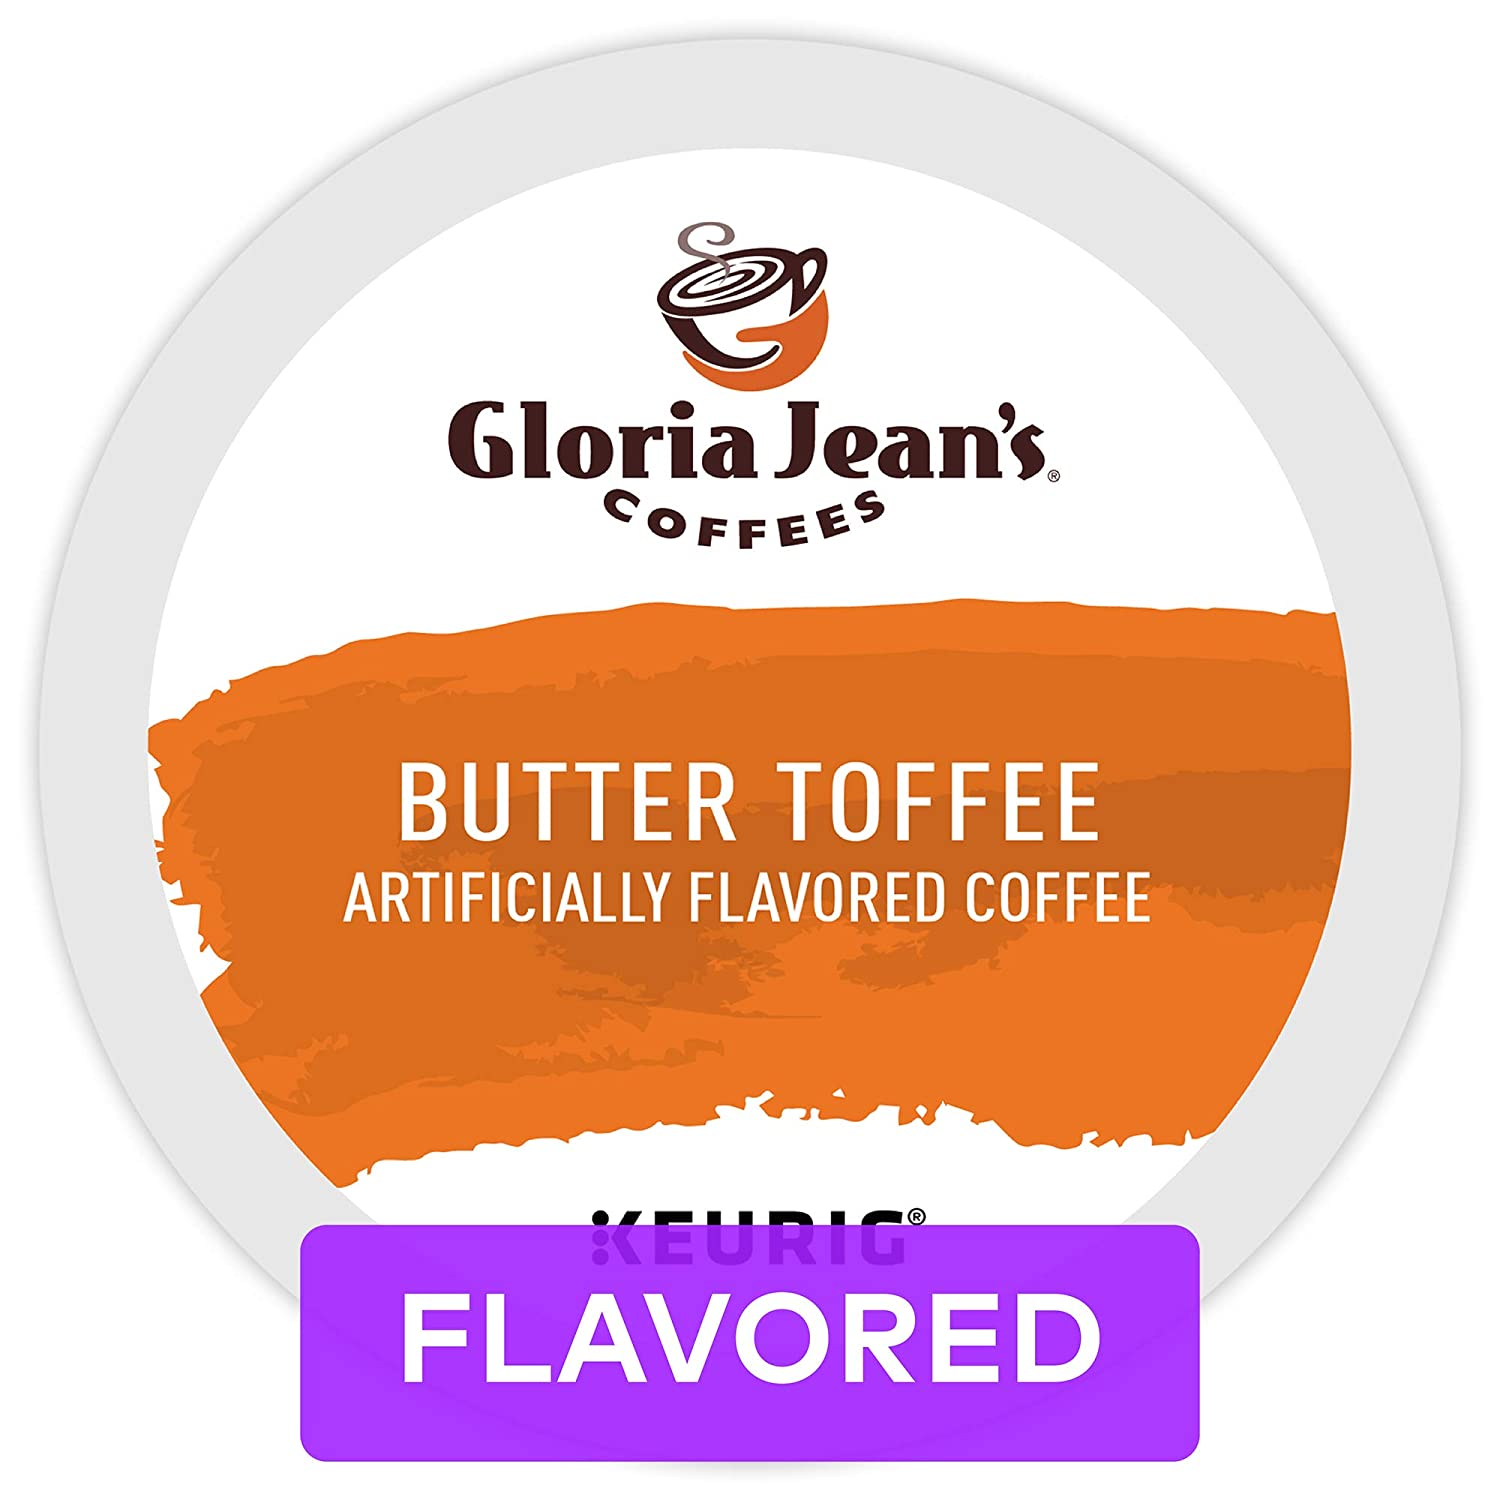 Gloria Jean's Coffees Butter Toffee, Single Serve Coffee K-Cup Pod, Flavored Coffee, 72